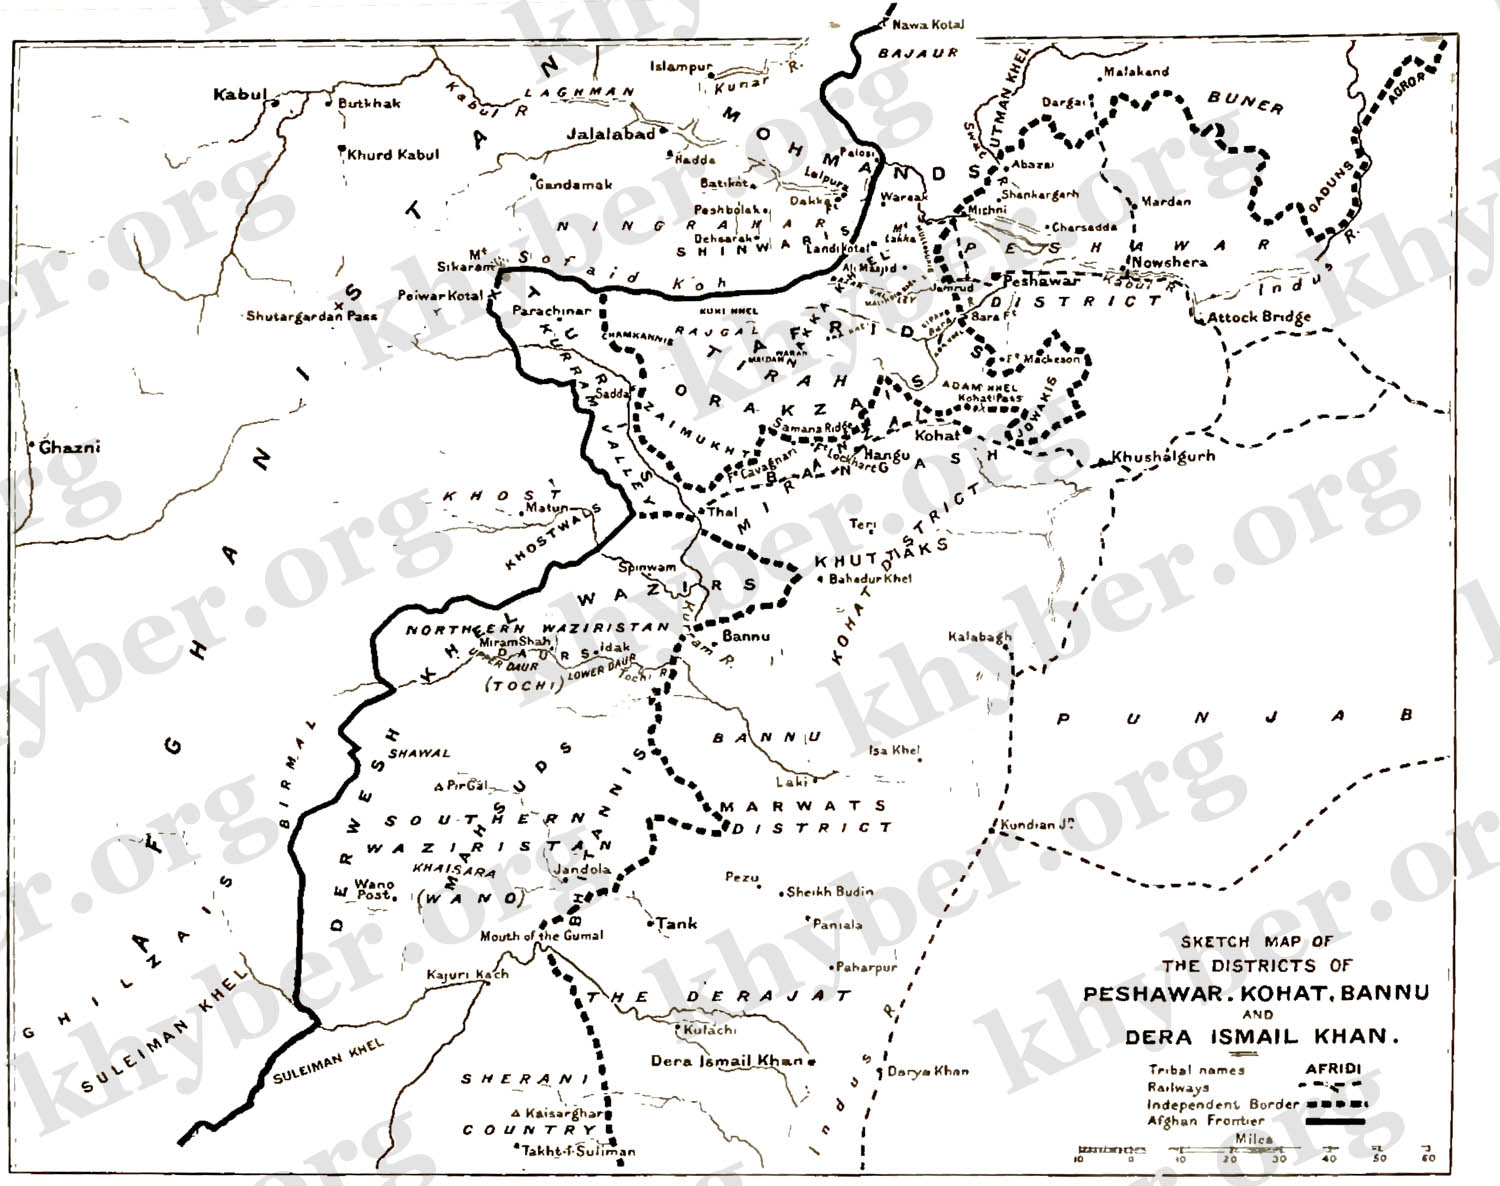 FileSketch Map Of The Districts Of Peshawar Kohat Bannu And - Kohat map